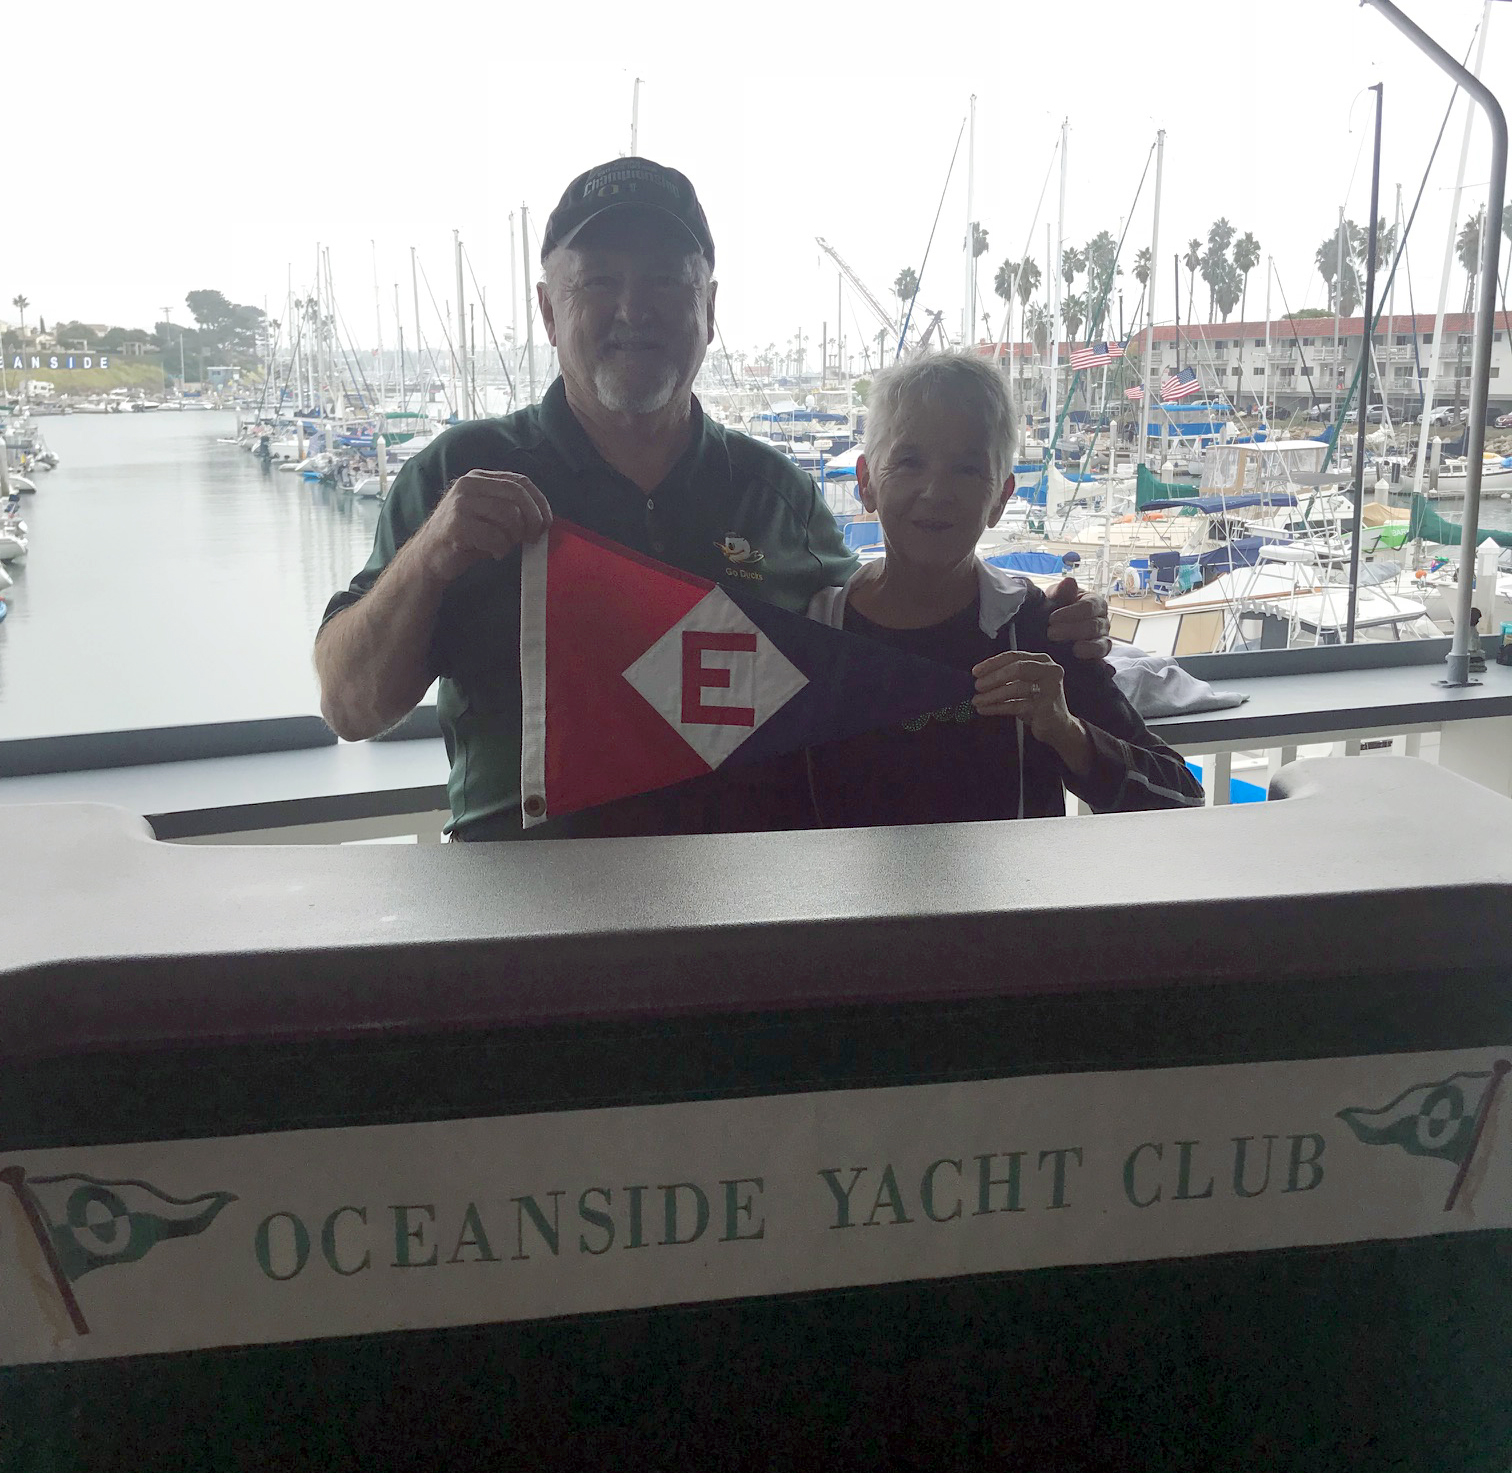 Rex and Bonnie Ballenger hoist the colors at the Oceanside Yacht Club bar.